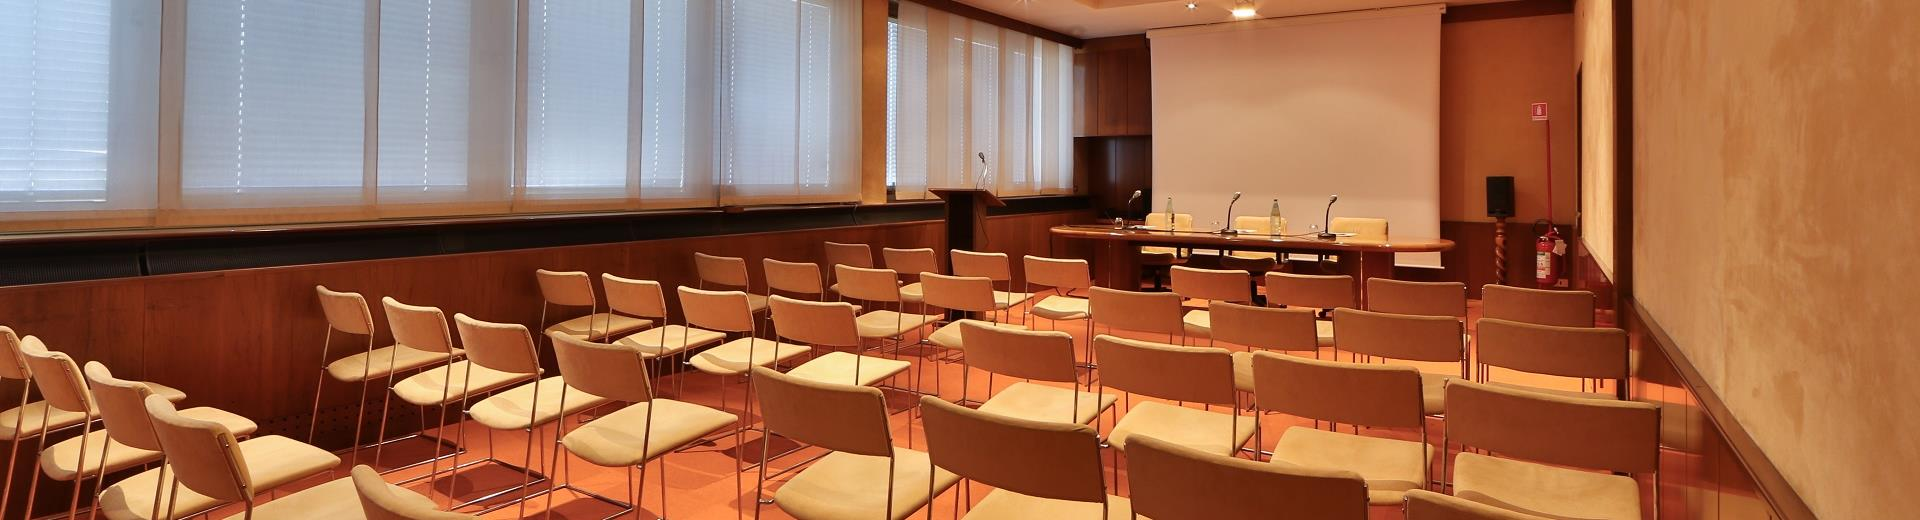 For your meetings and conferences in Gorizia, Best Western Gorizia Palace Hotel